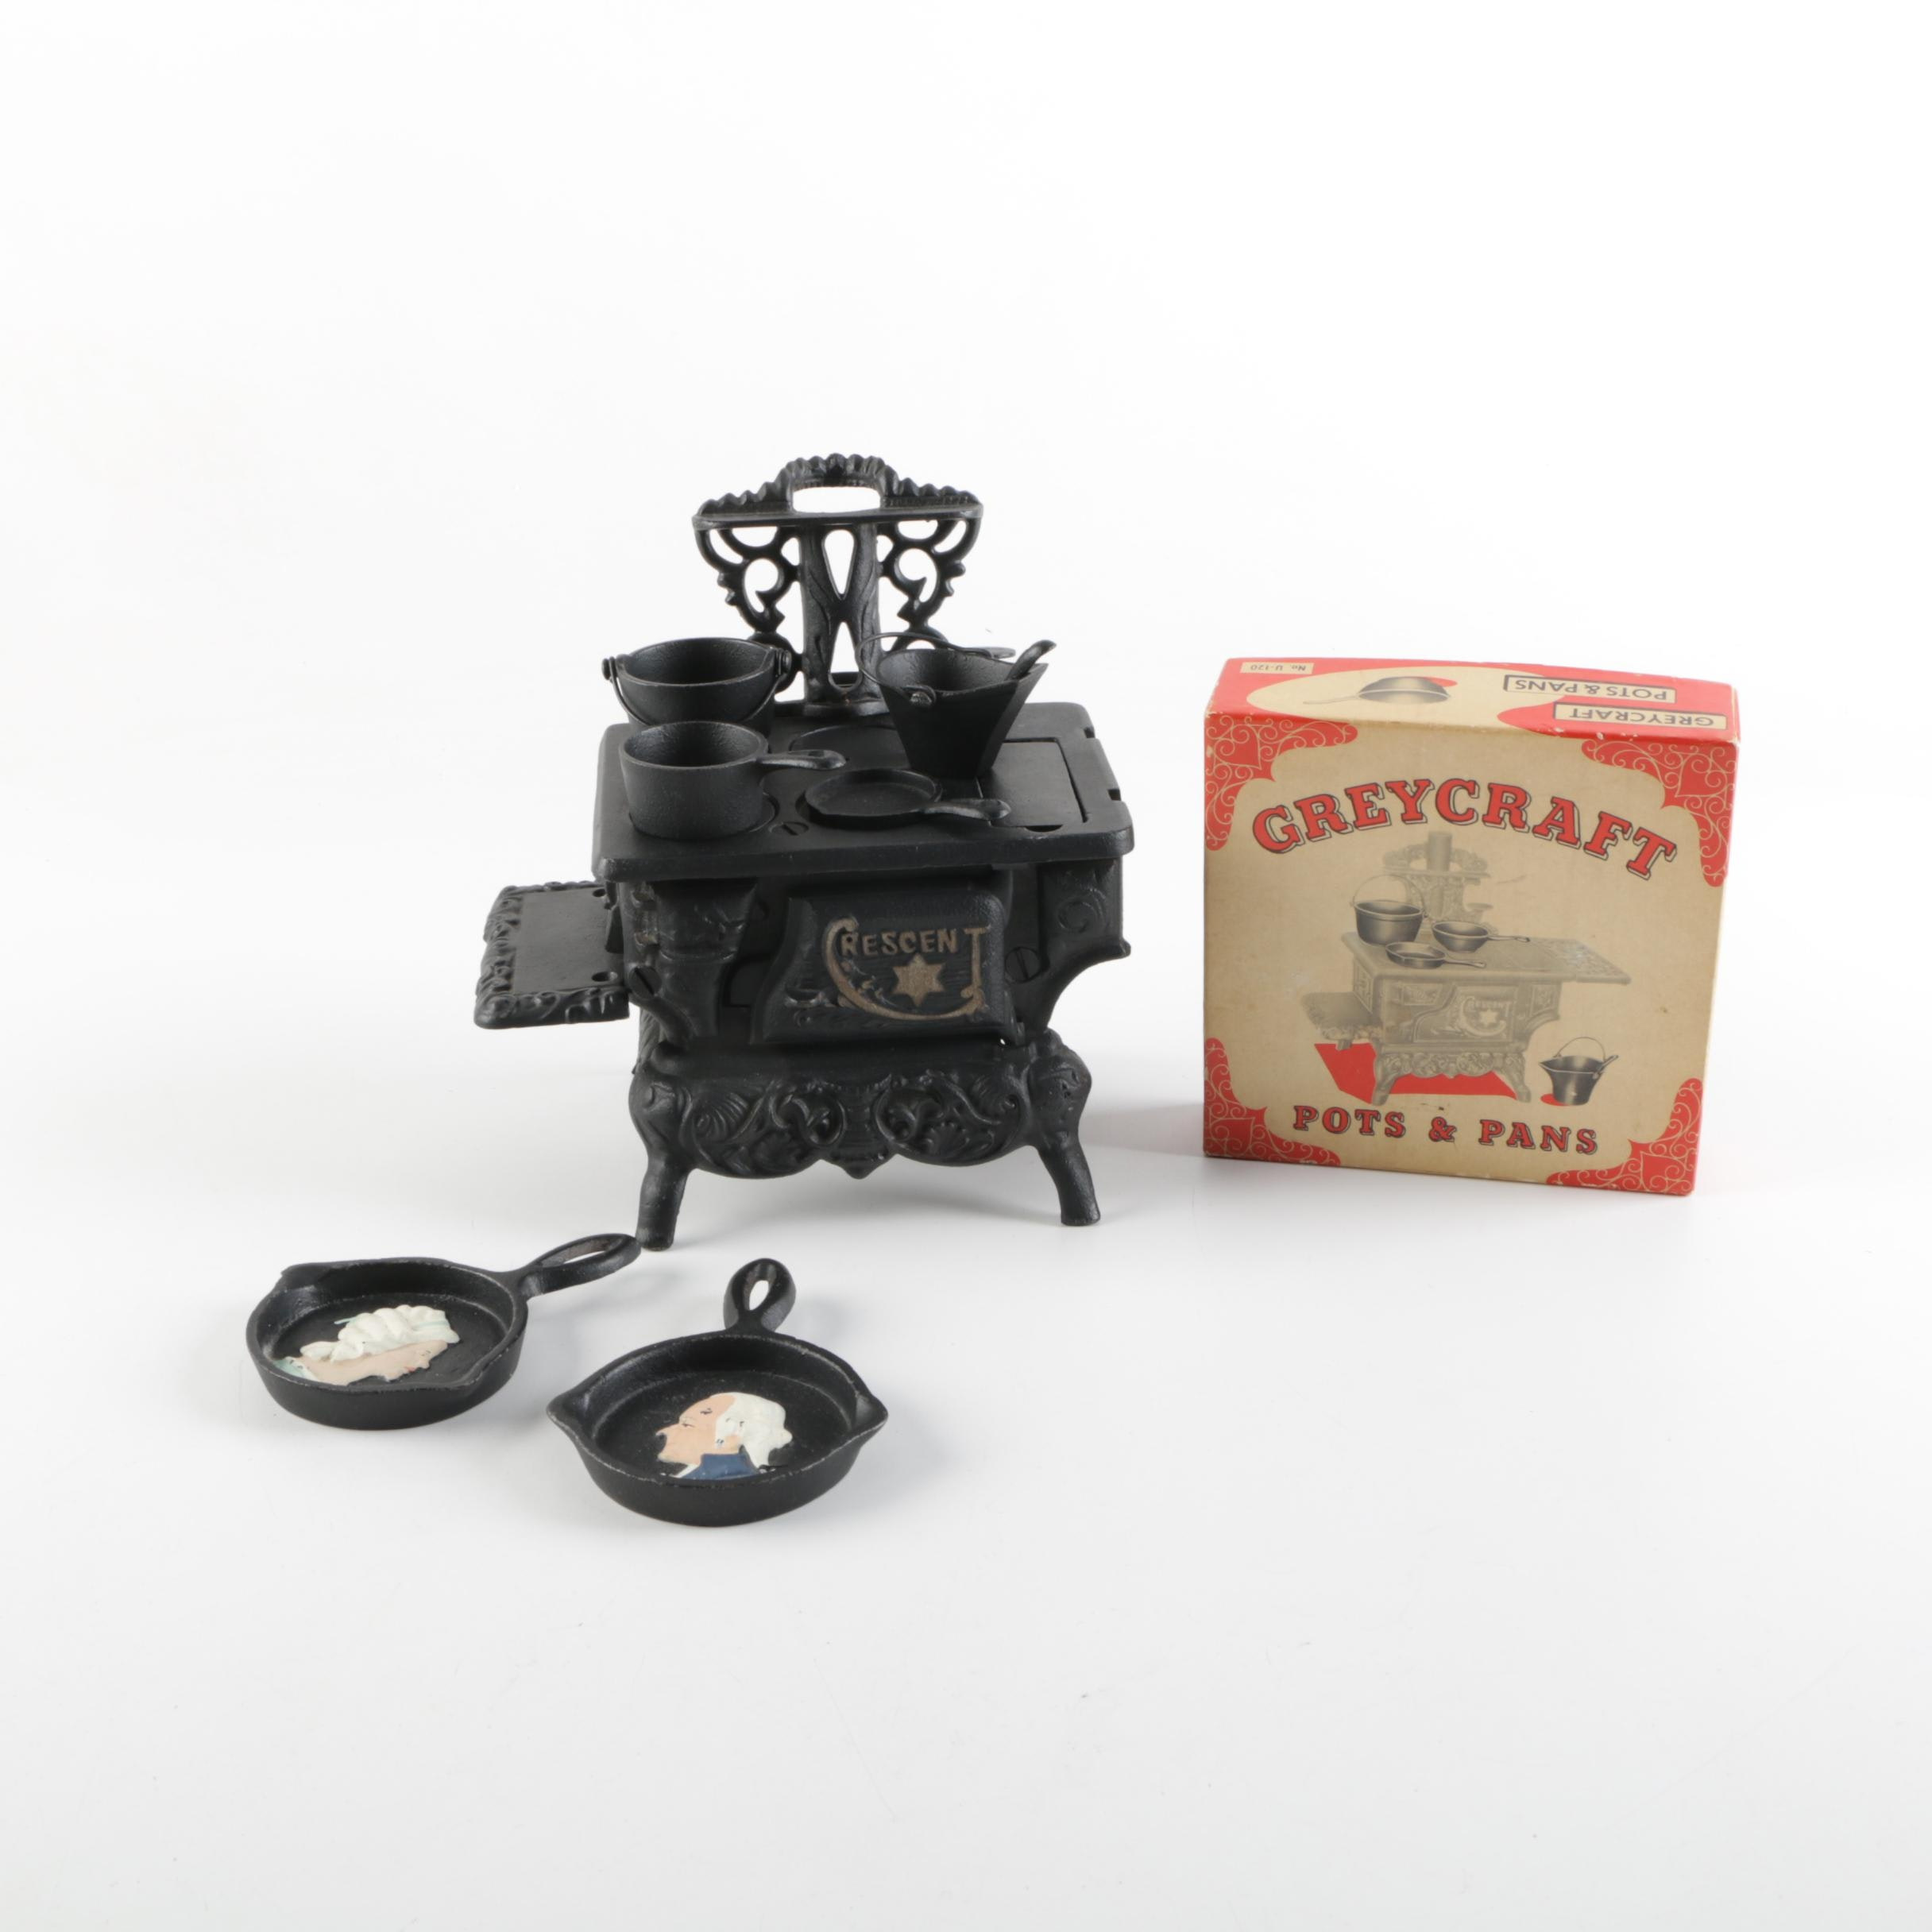 Vintage Crescent Miniature Cast Iron Stove with Greycraft and John Wright Pans